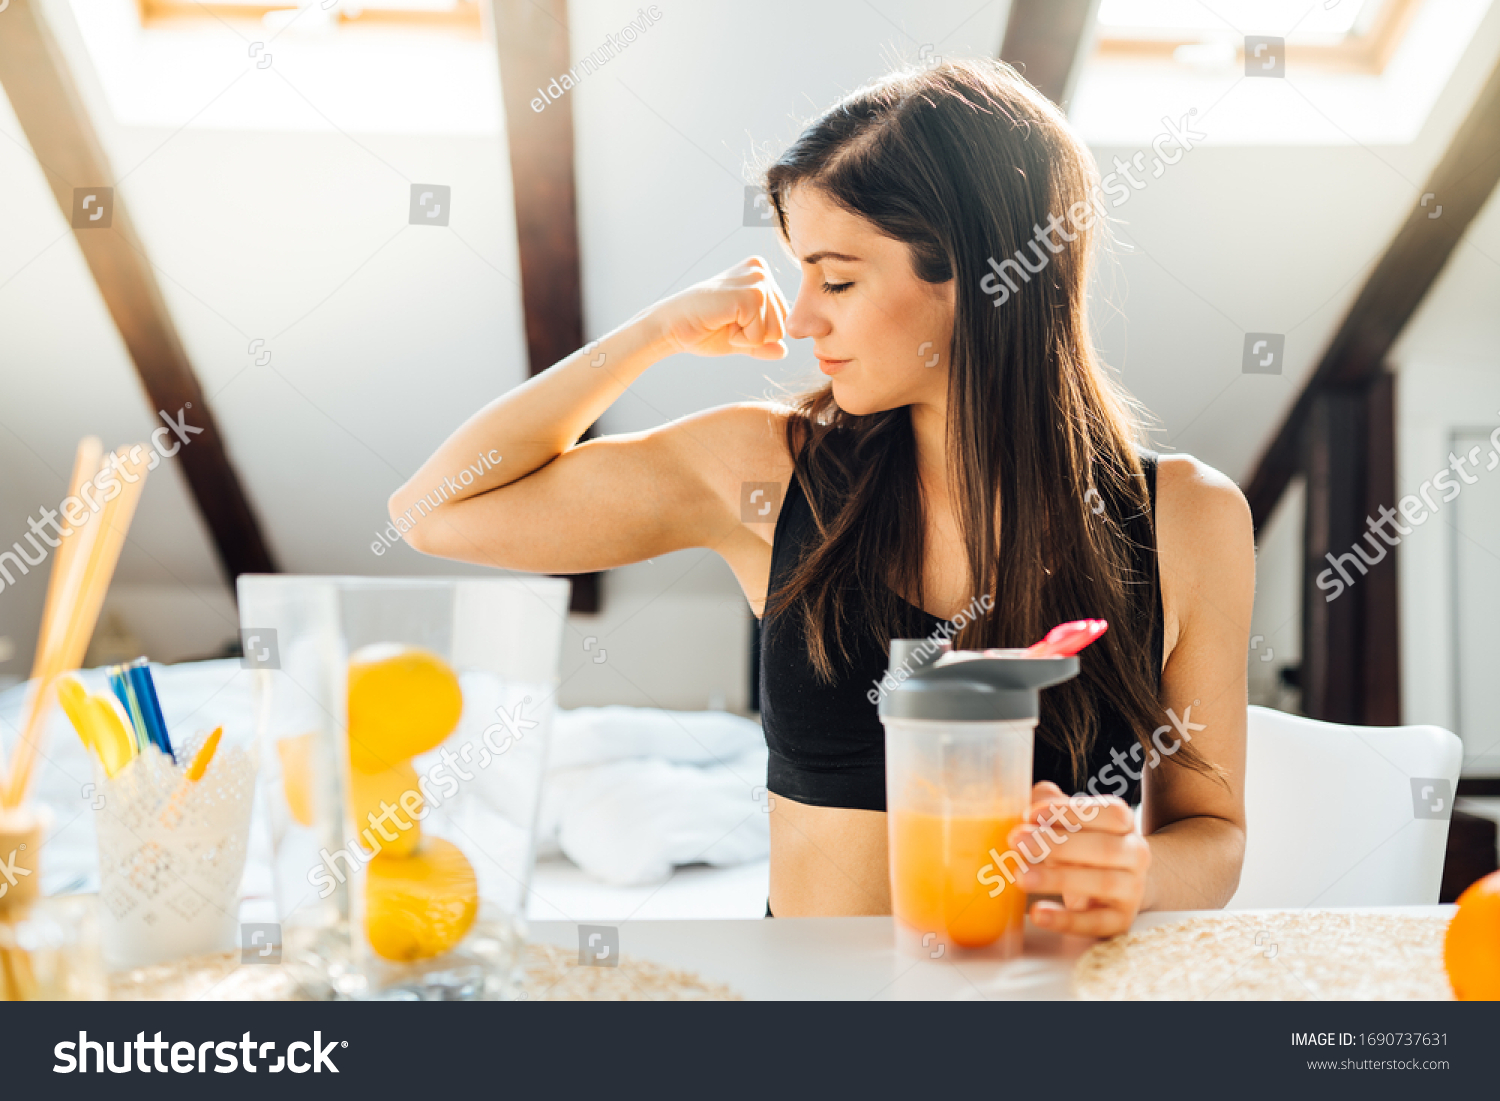 Woman at home drinking orange flavored amino acid vitamin powder.Keto supplement.After exercise liquid meal.Weight loss fitness nutrition diet.Immune system support.Organic citrus fruit drink #1690737631